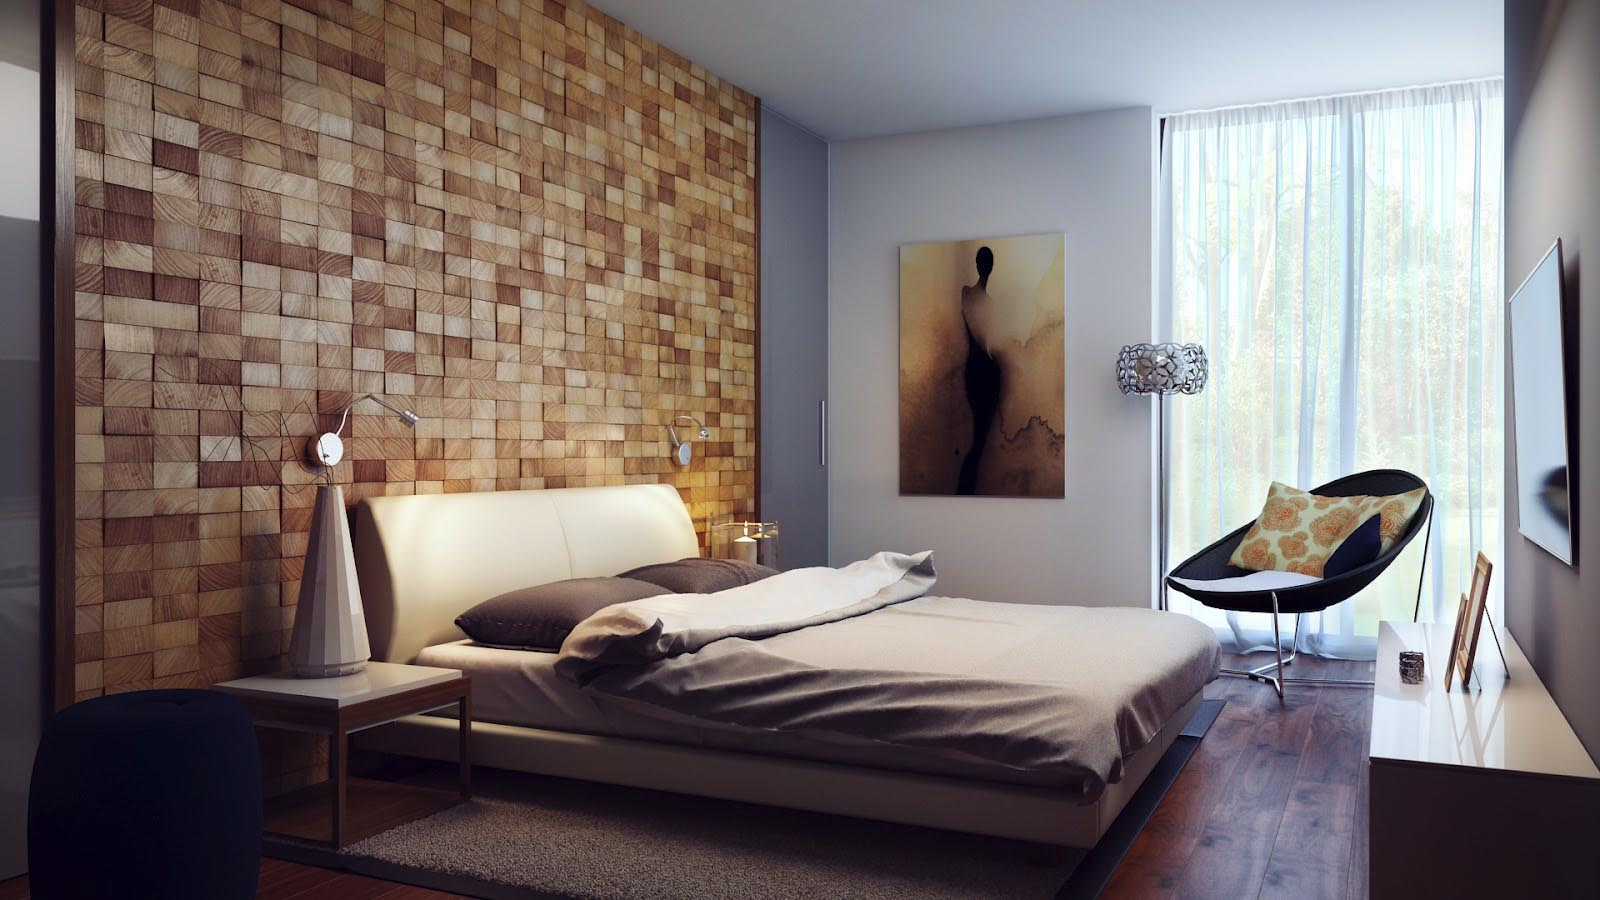 bedroom wallpaper feature wall 2 design ideas - enhancedhomes